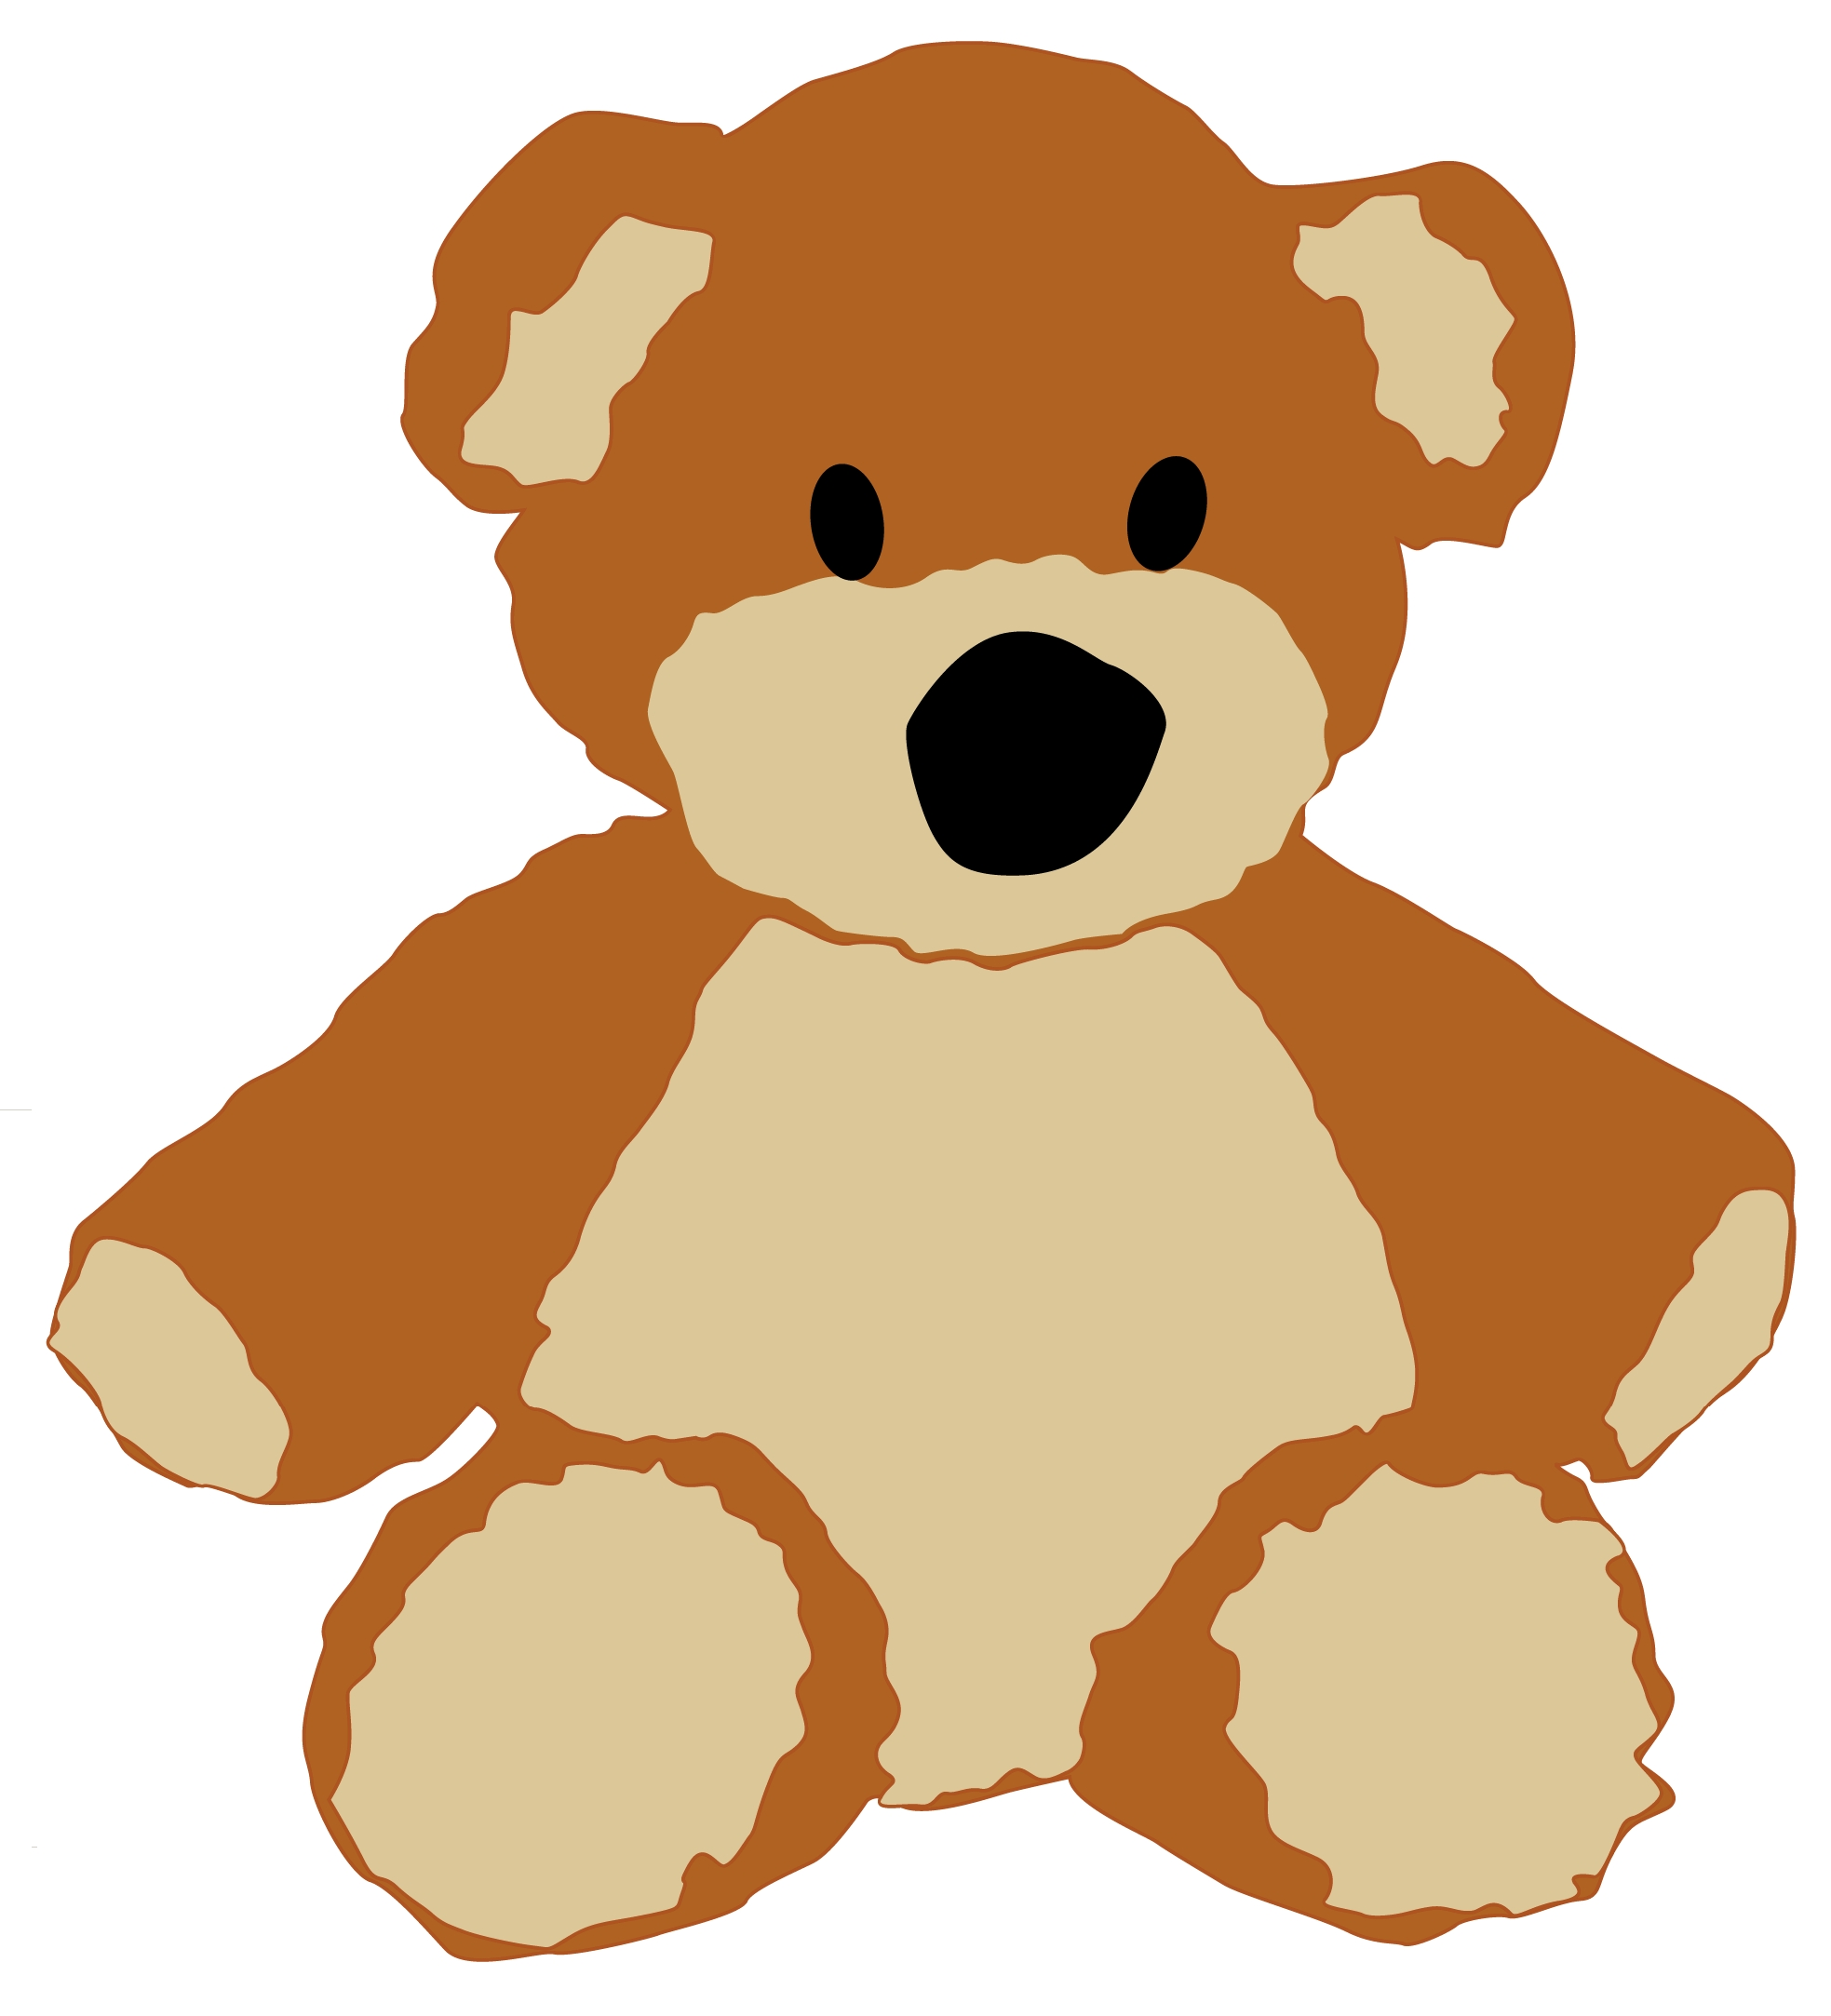 Teddy Bear Clip Art Clipartion Com 3-Teddy bear clip art clipartion com 3-9